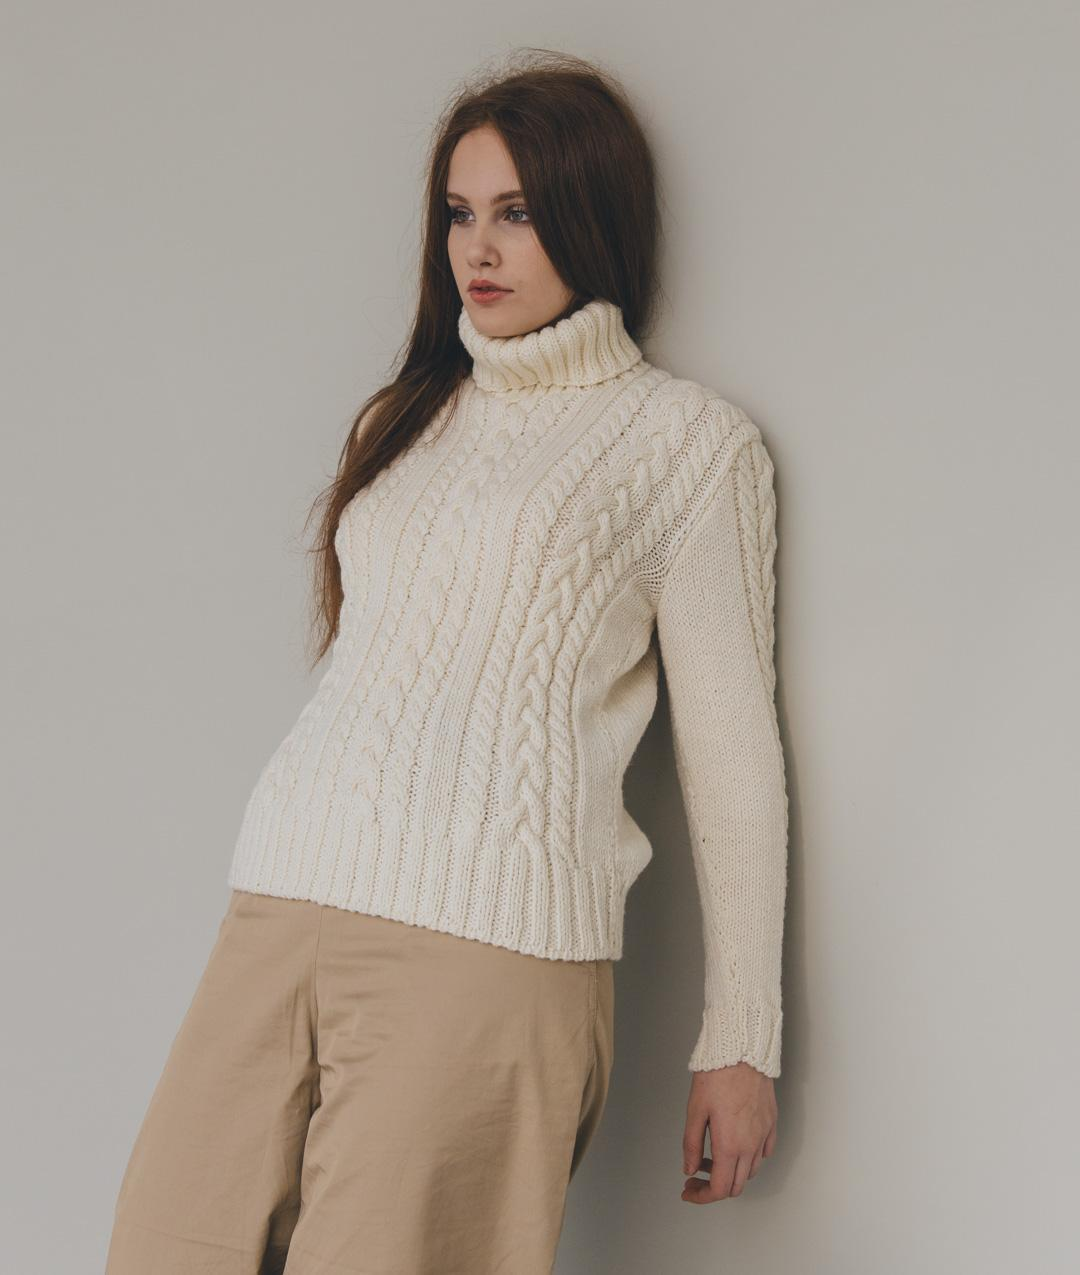 Sweaters and Tops - Wool - MONTANA JUMPER - 1